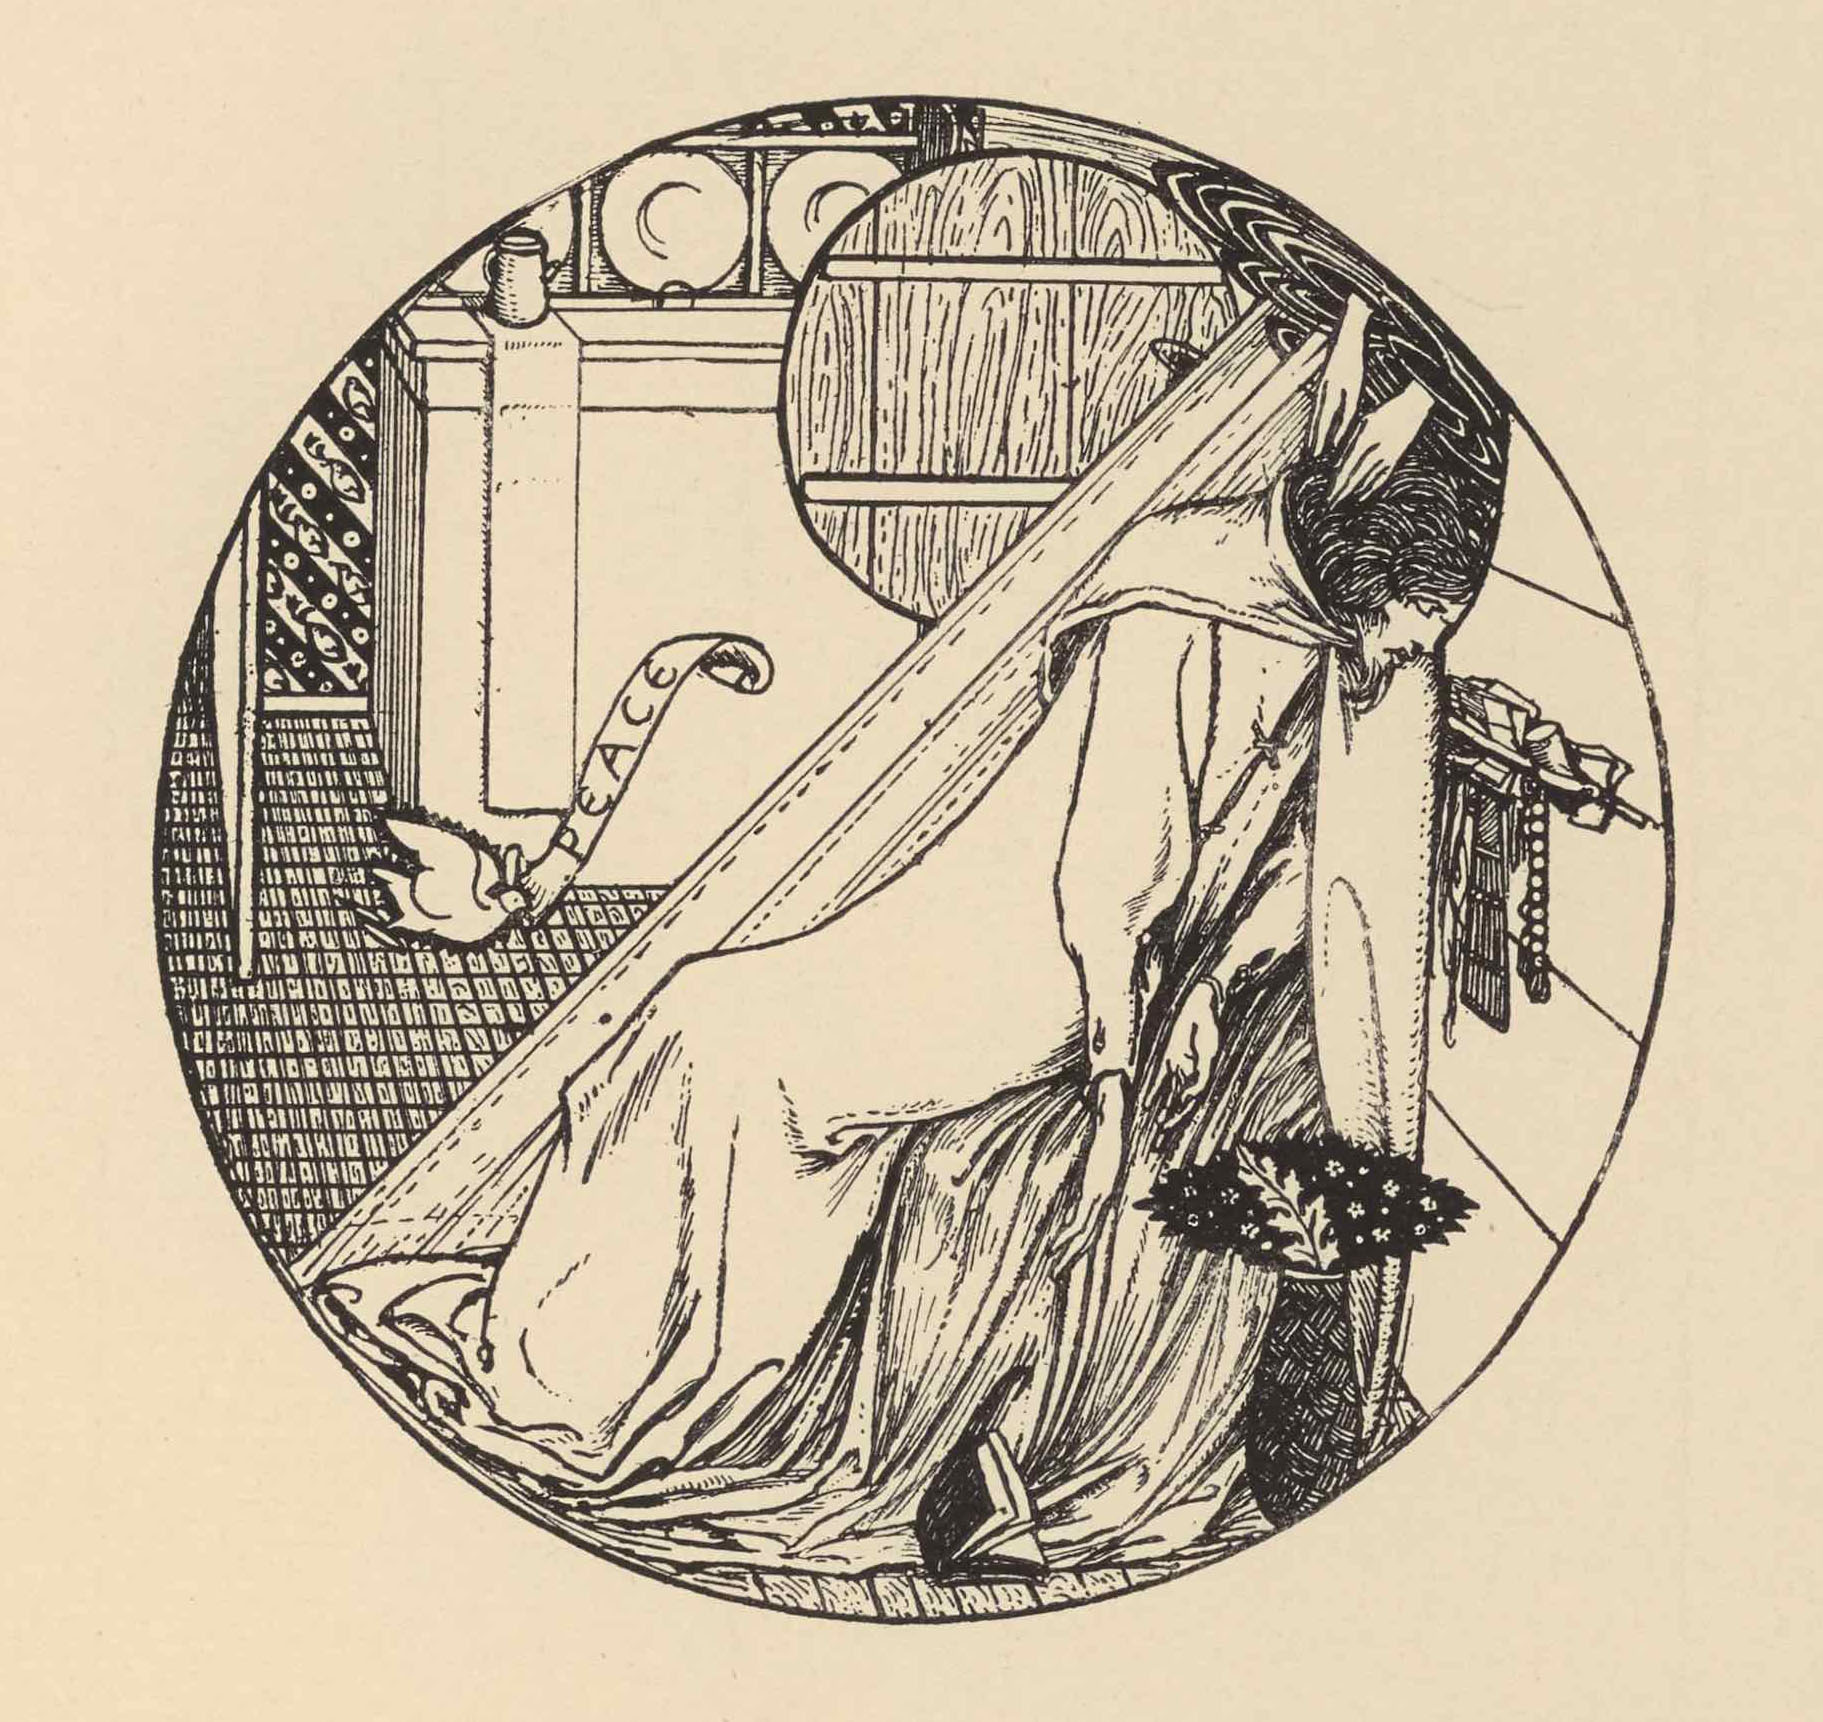 The reproduction of a pen design is printed in black ink, in an outlined roundel shape. It depicts the interior of a room, in which King James sits in a trance-like state.